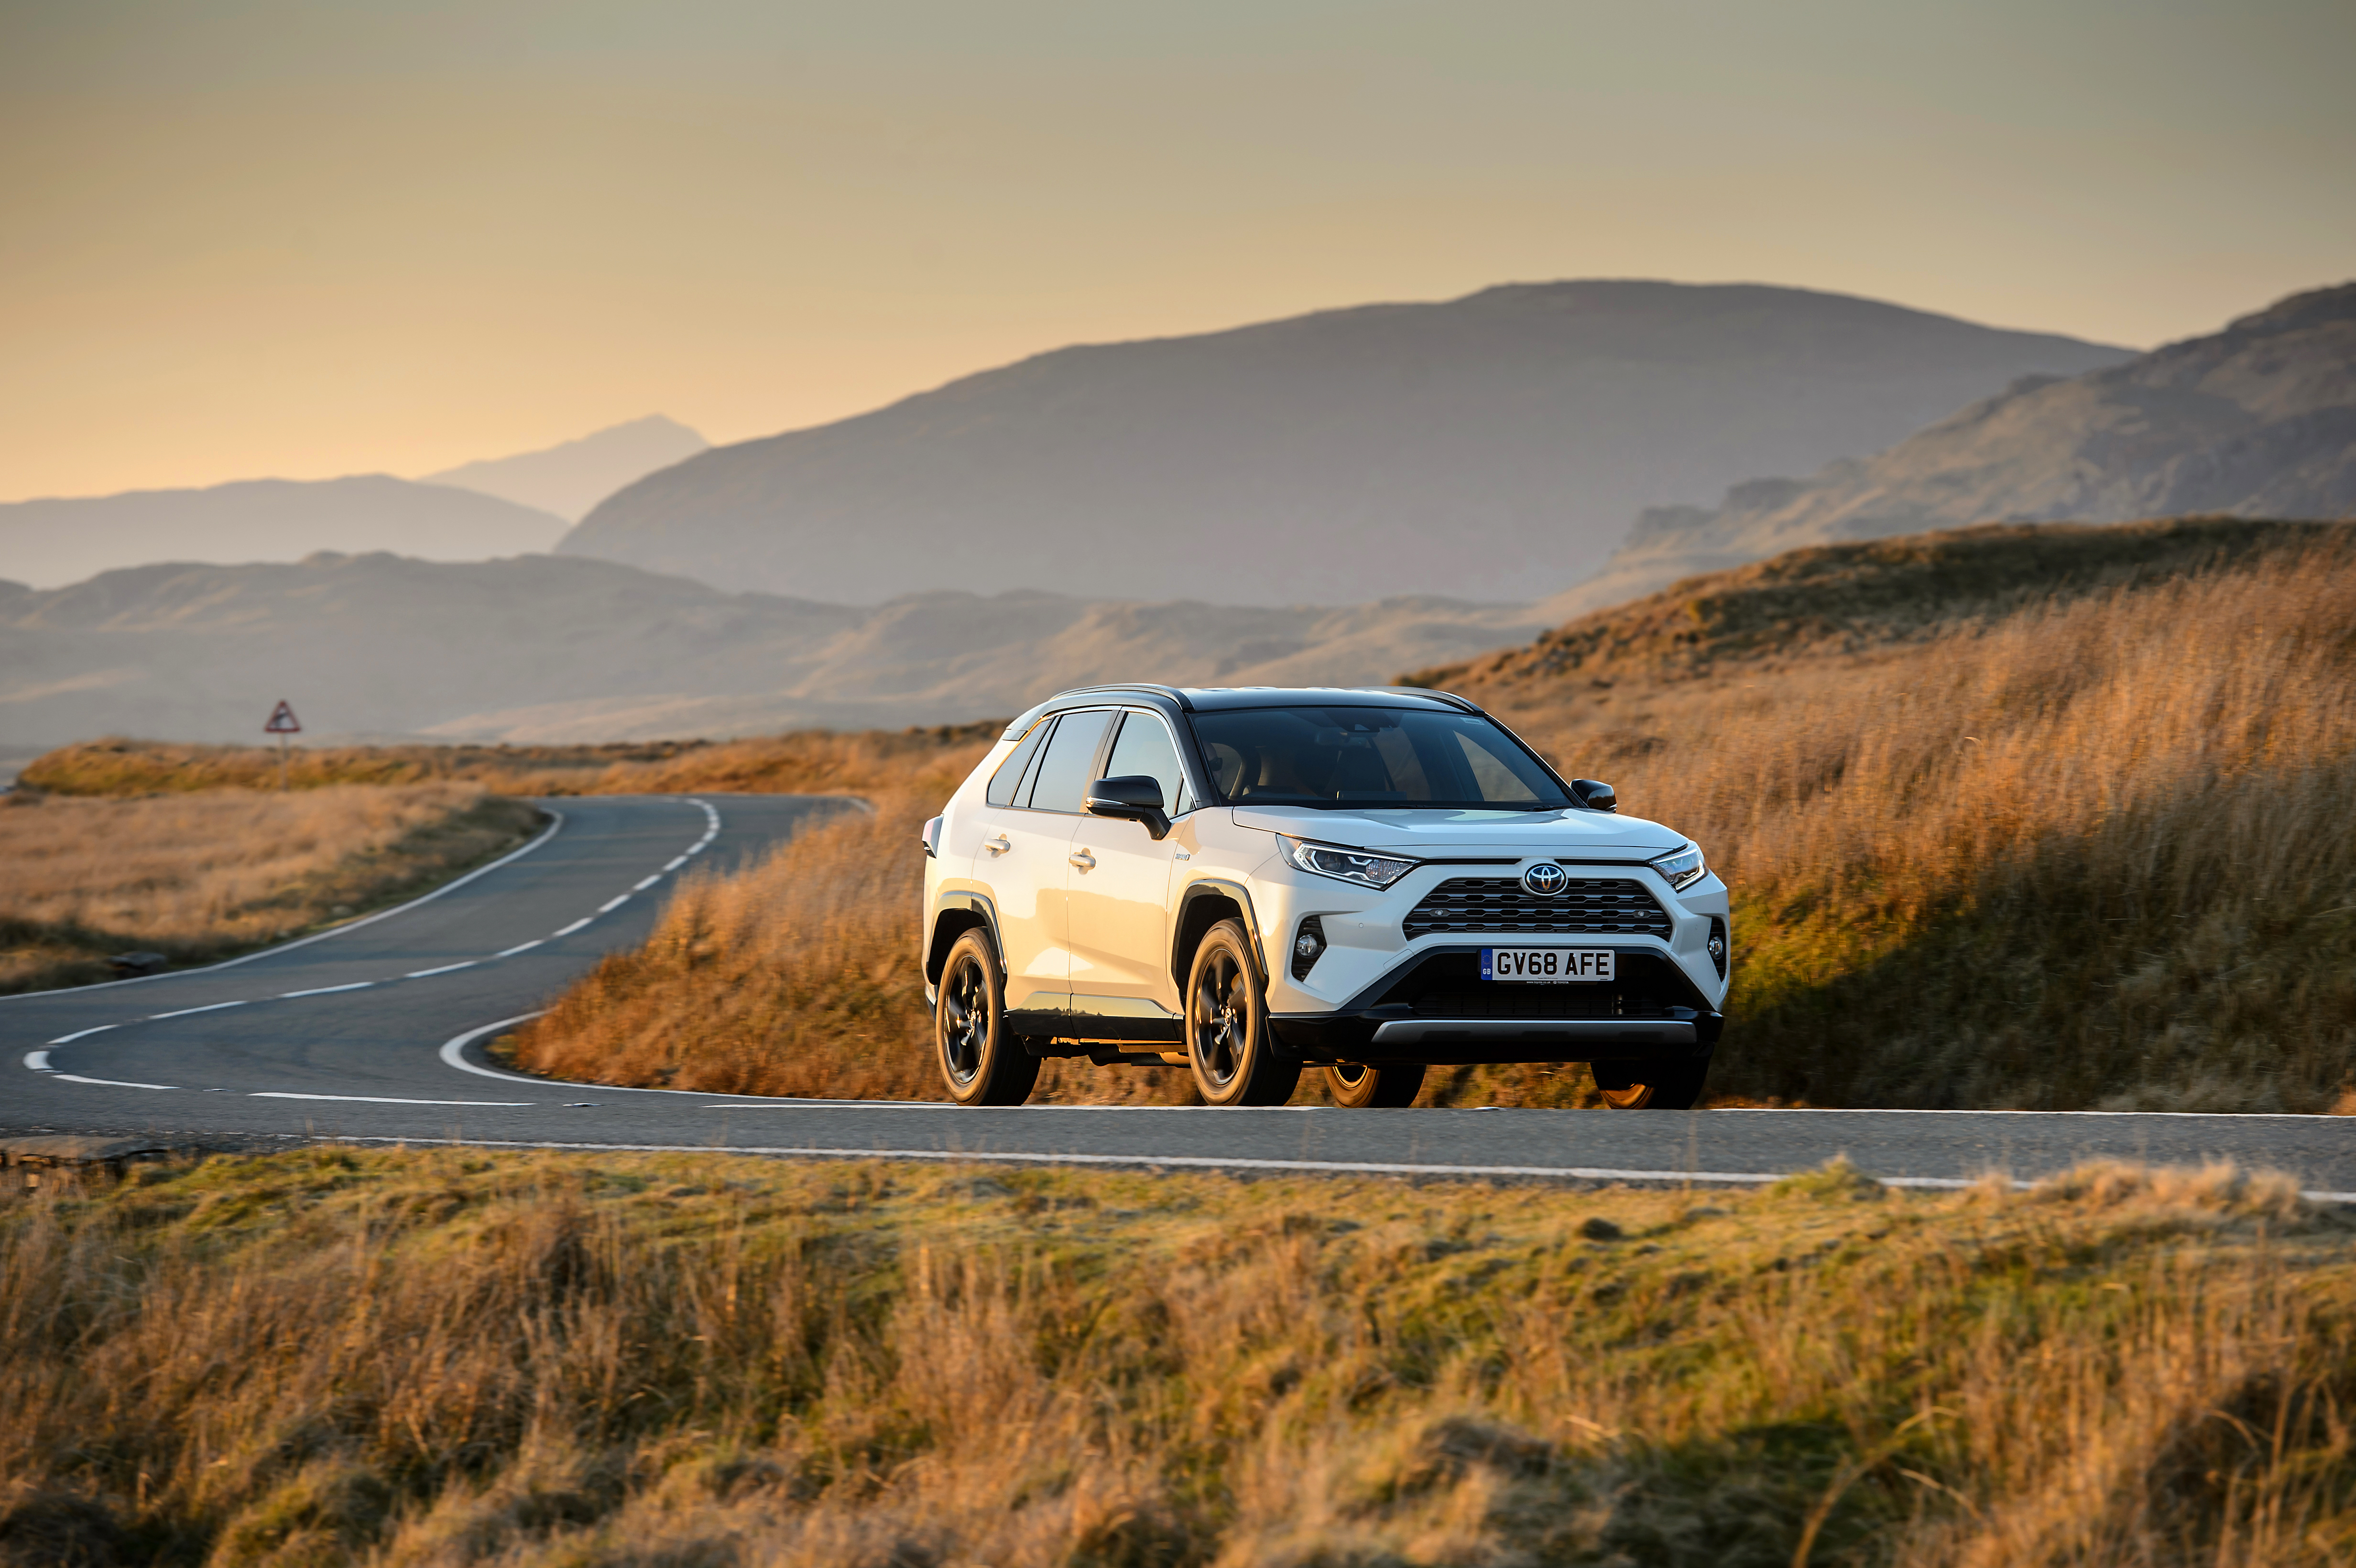 Toyota RAV4 review: The 4×4 that dreamed of being a GTI, all grown up and 25 years old